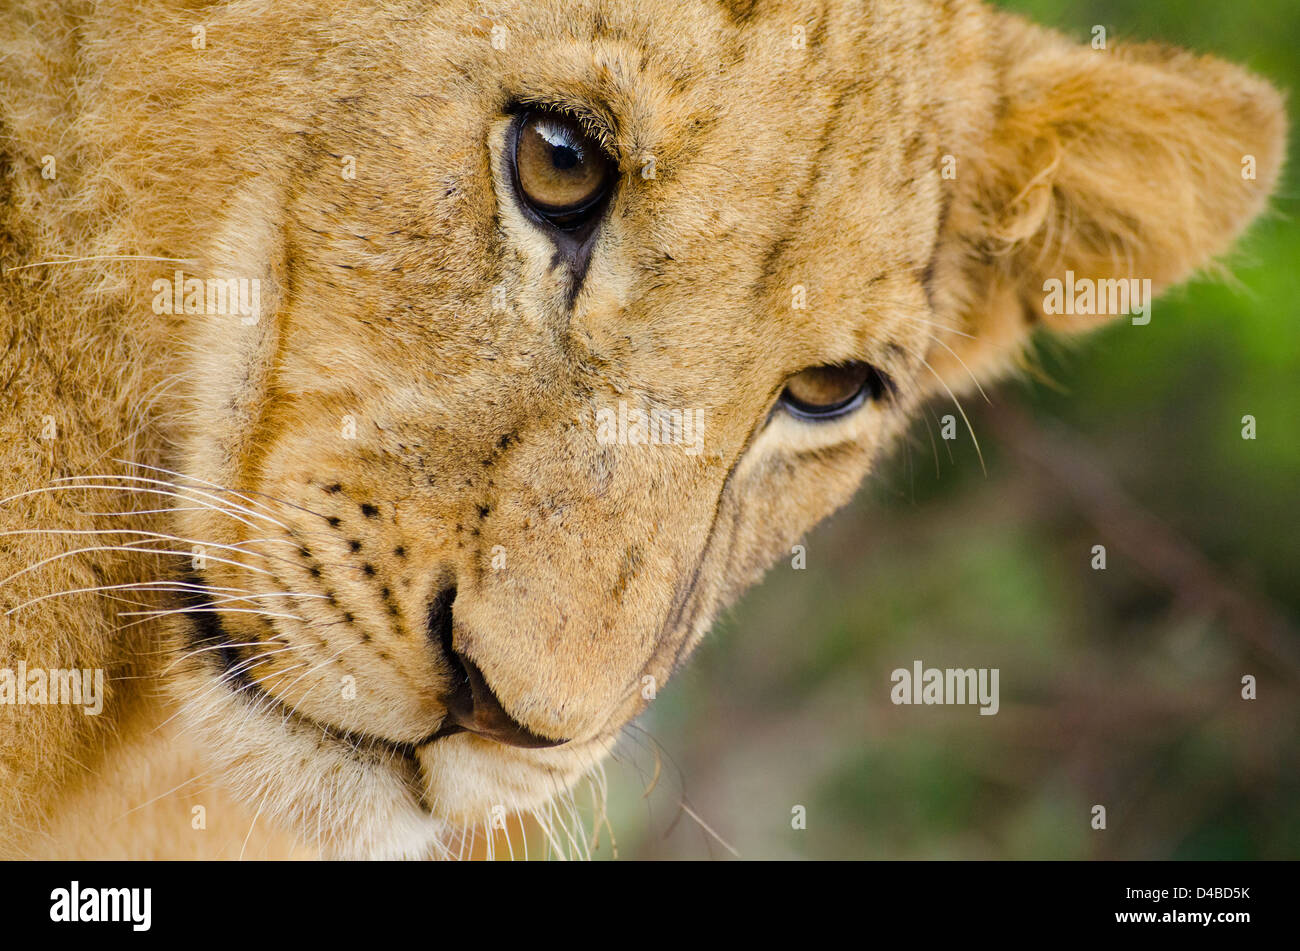 Young Lion photographed in Johannesburg, South Africa - Stock Image